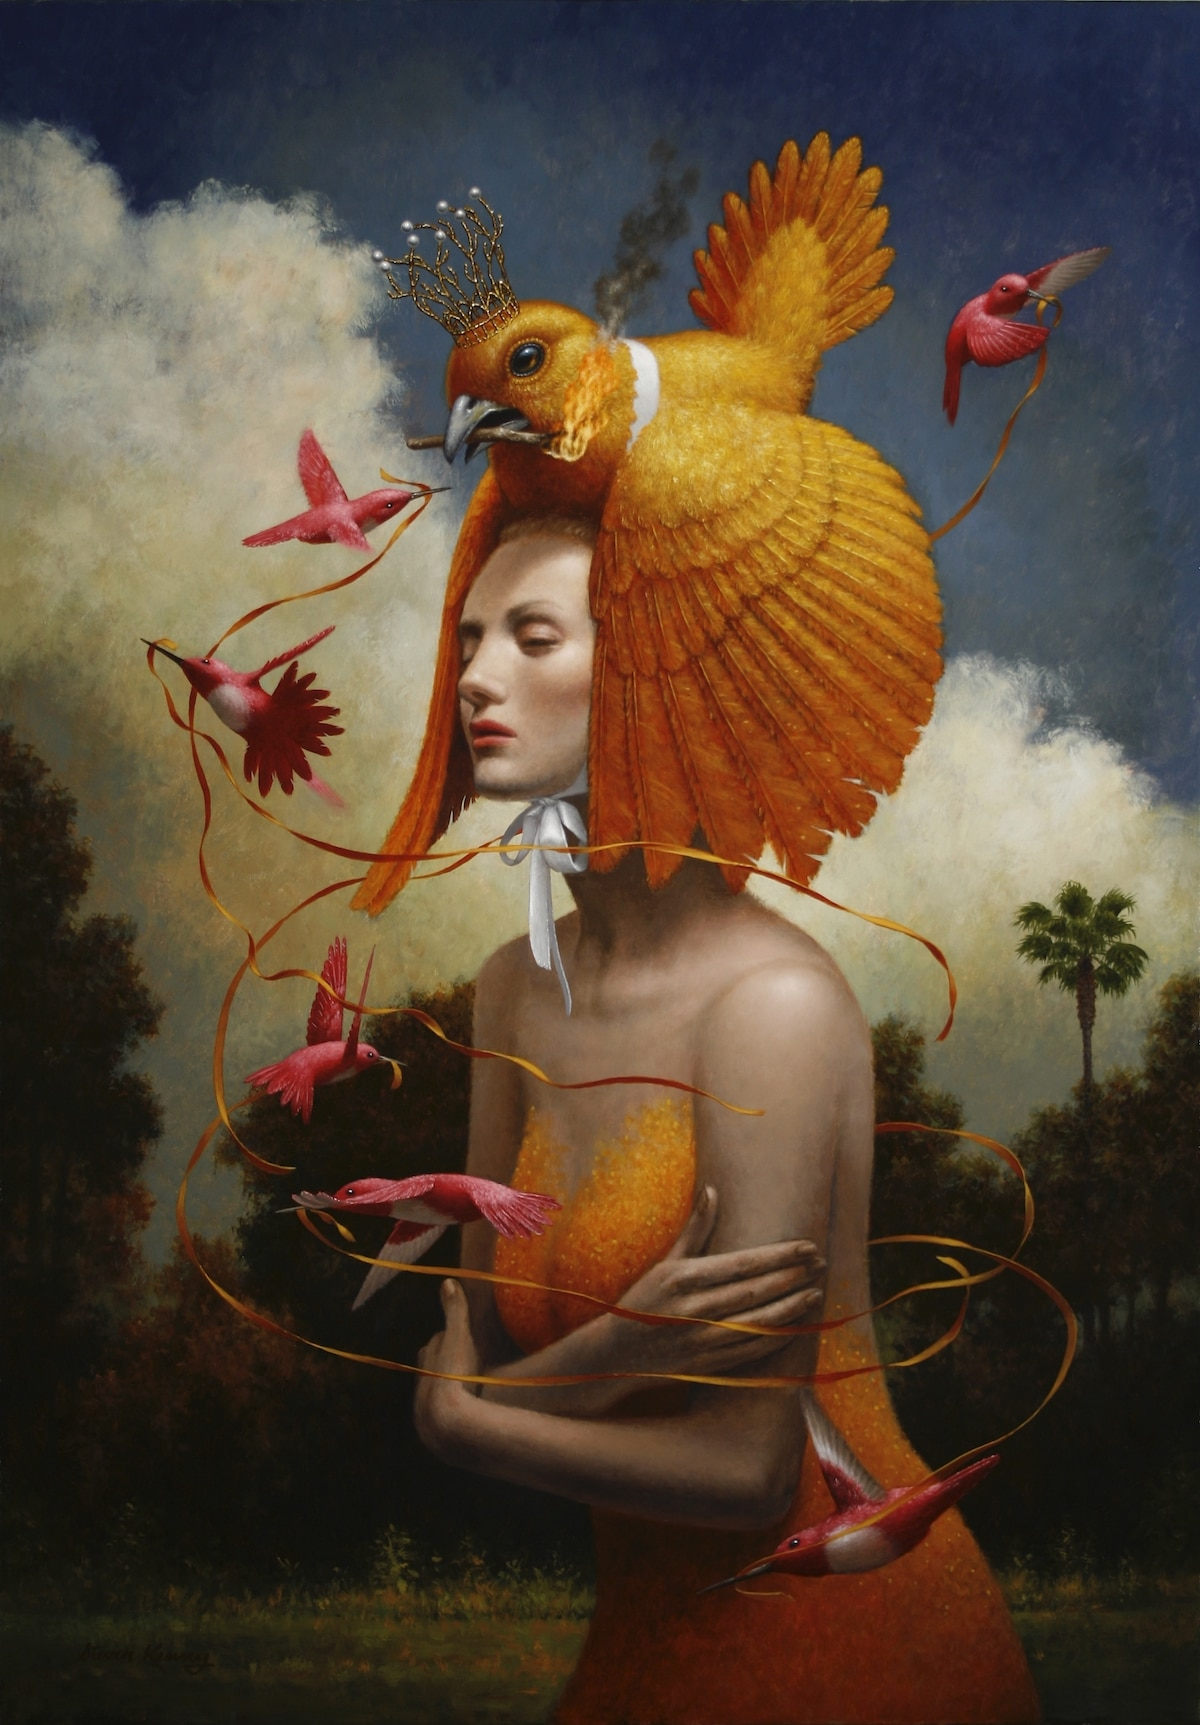 Steven Kenny Painting for the Beautiful Bizarre Magazine Art Prize